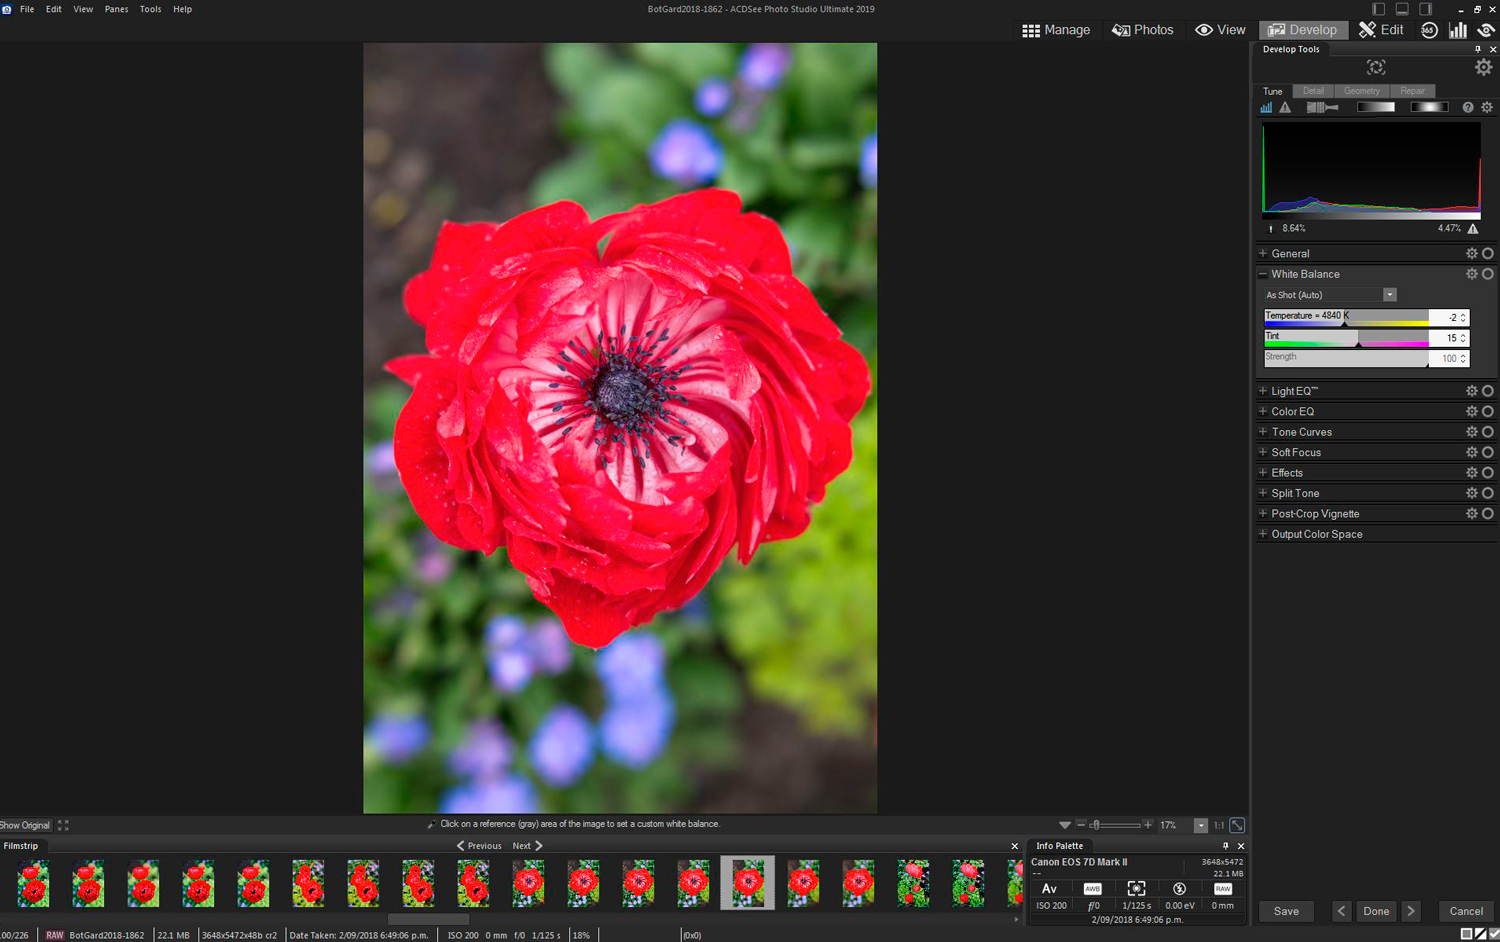 13 - ACDSee Photo Studio Ultimate 2019 Review